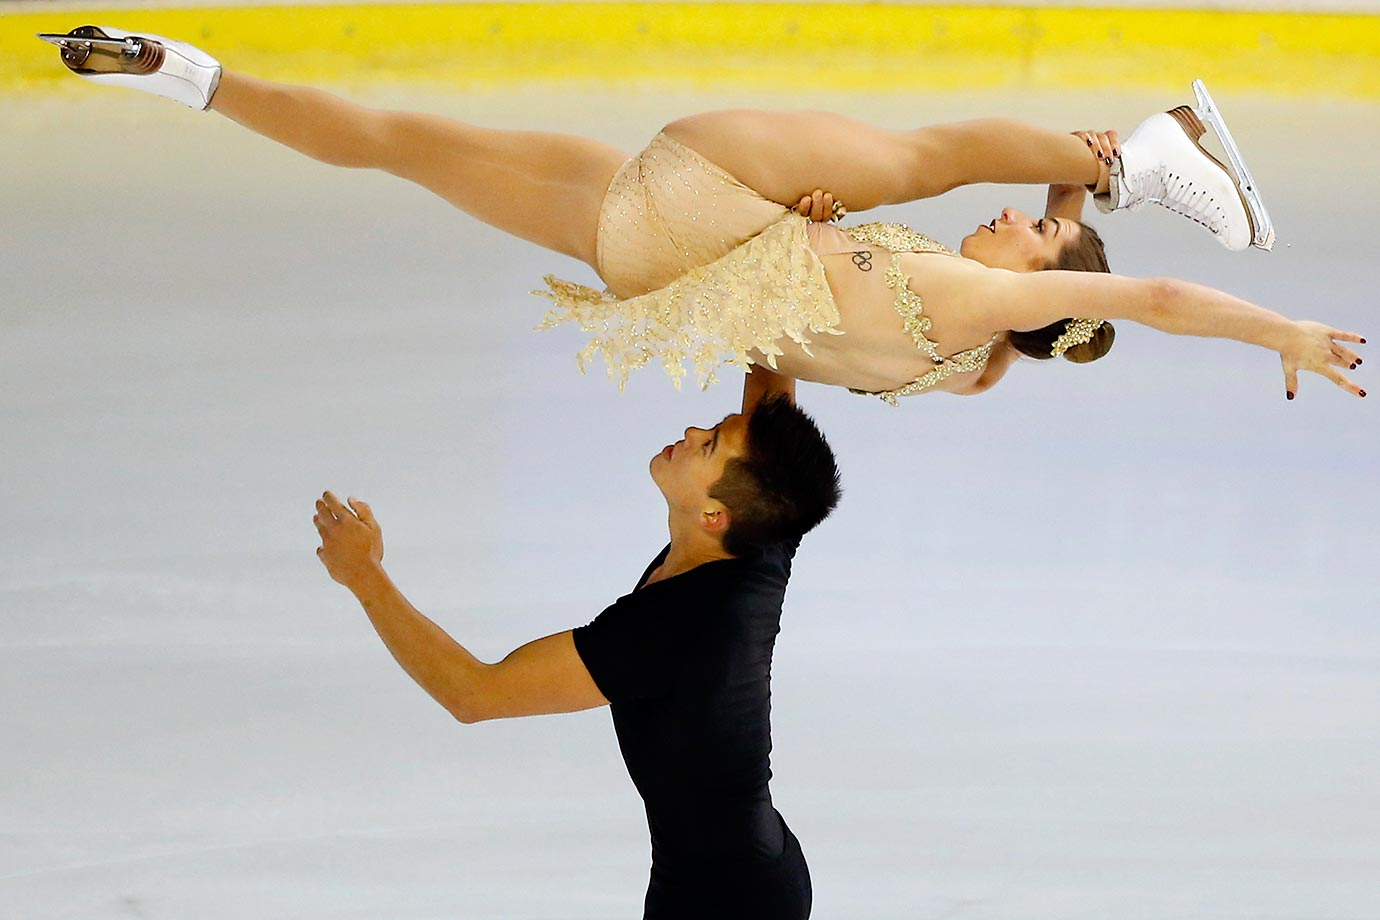 Marissa Castelli and Mervin Tran compete in the Pairs Short Program at the ISU figure skating Eric Bompard Trophy competition in France.